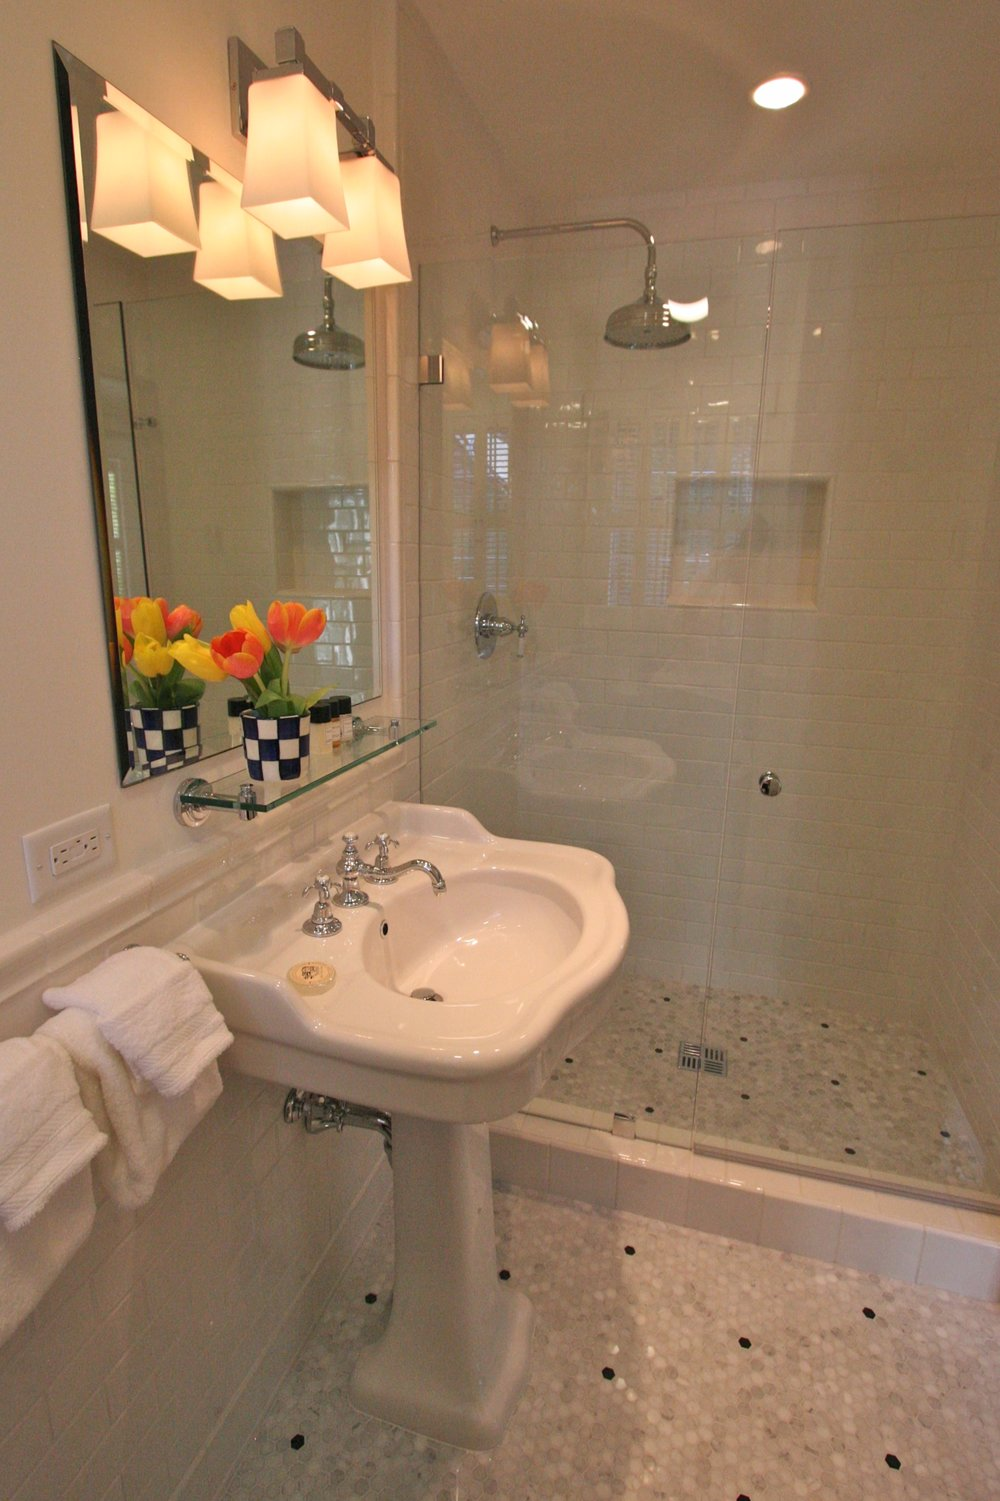 room#7 bathroom.JPG